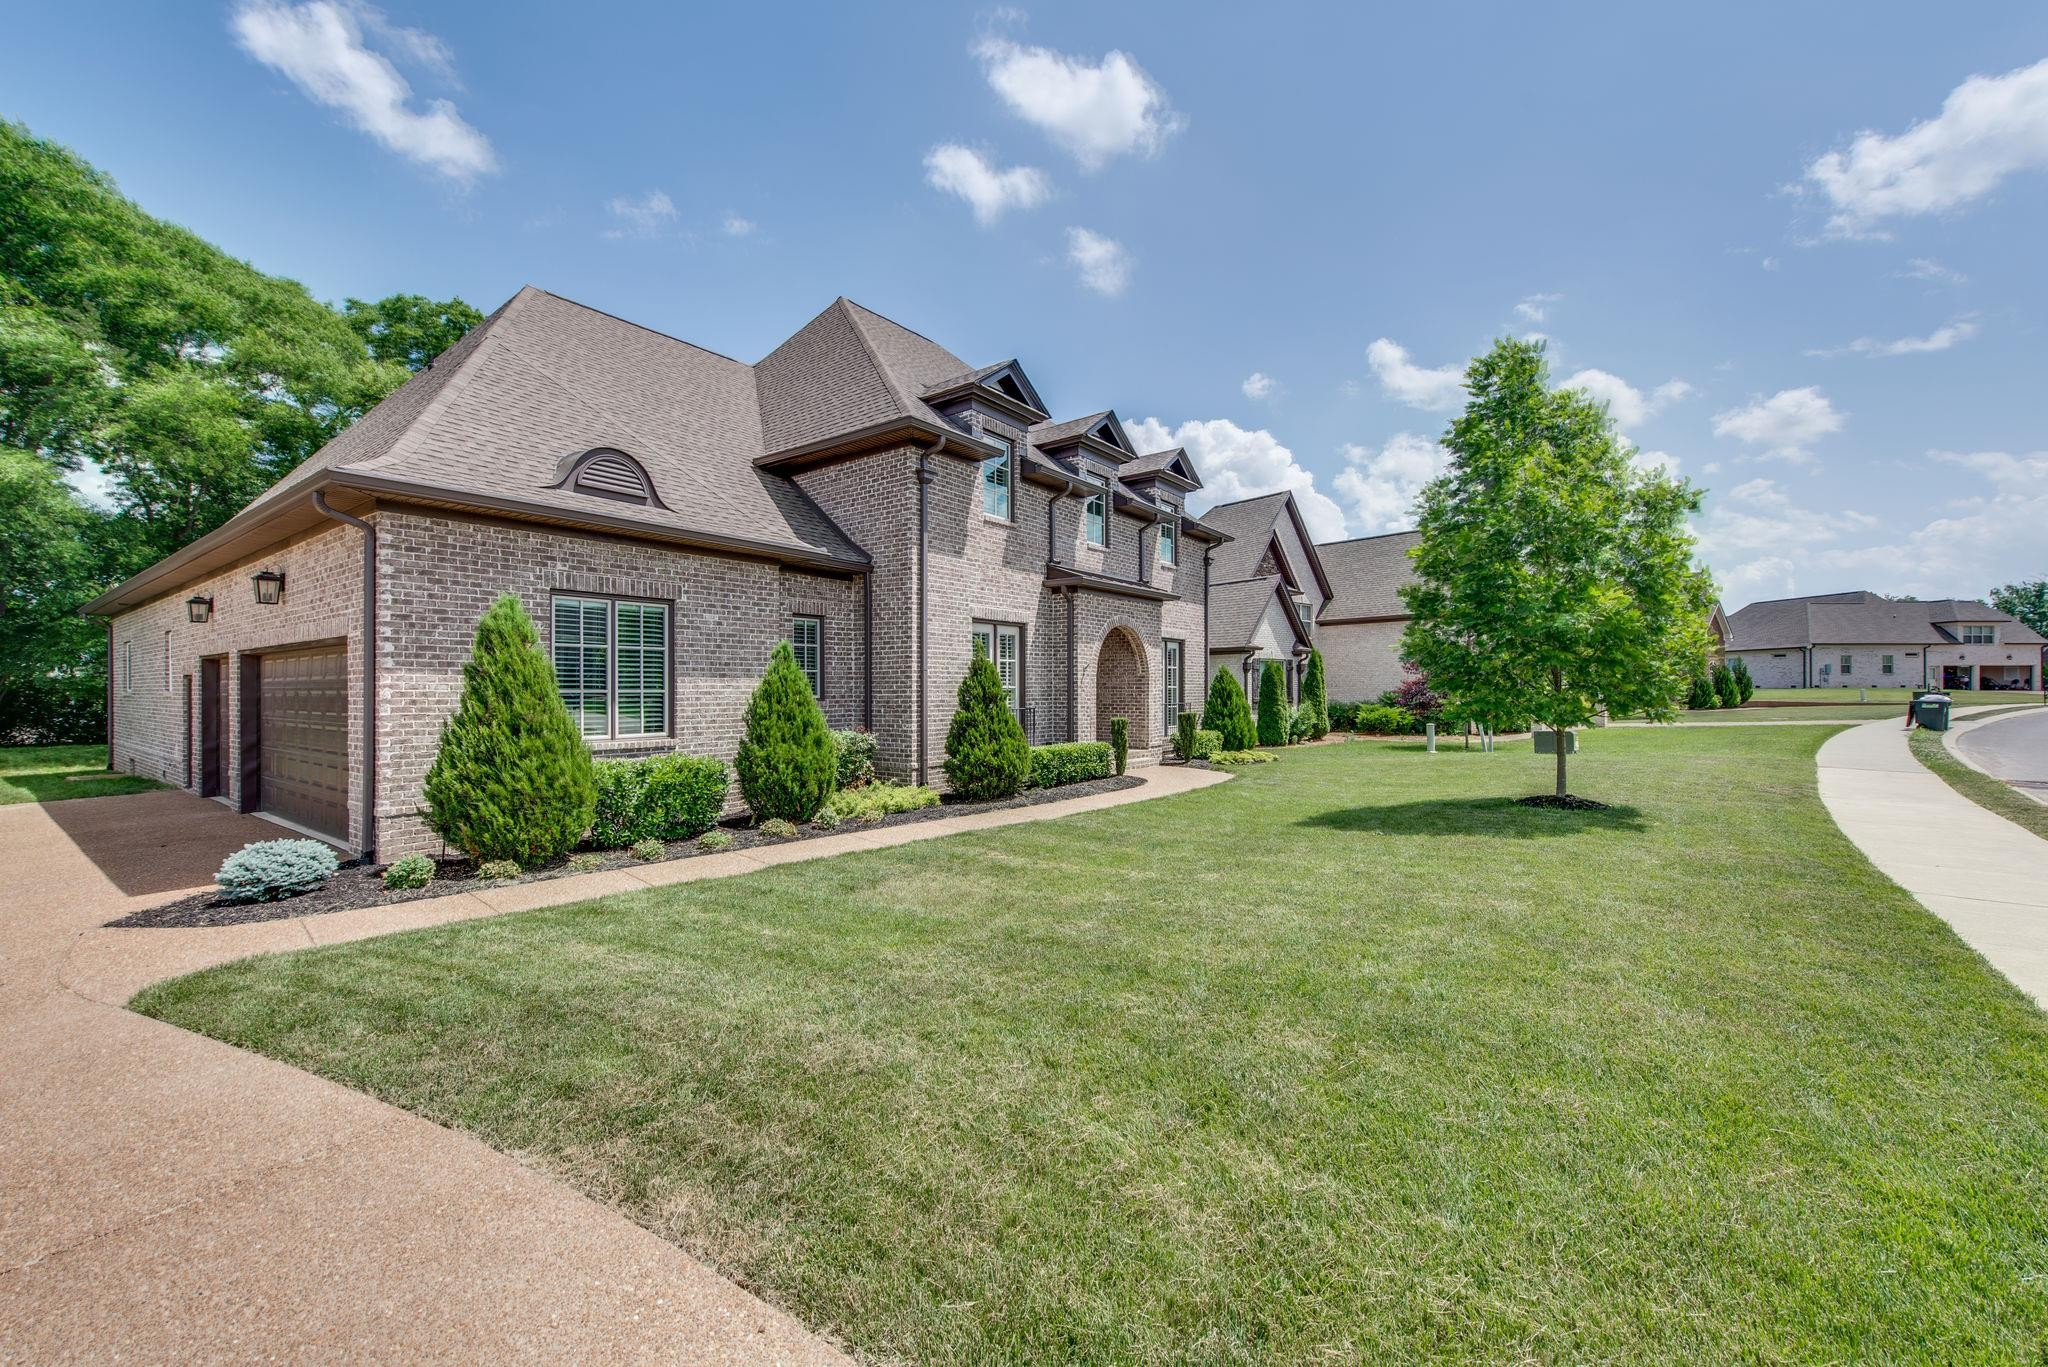 4006 Haversack Dr, one of homes for sale in Spring Hill